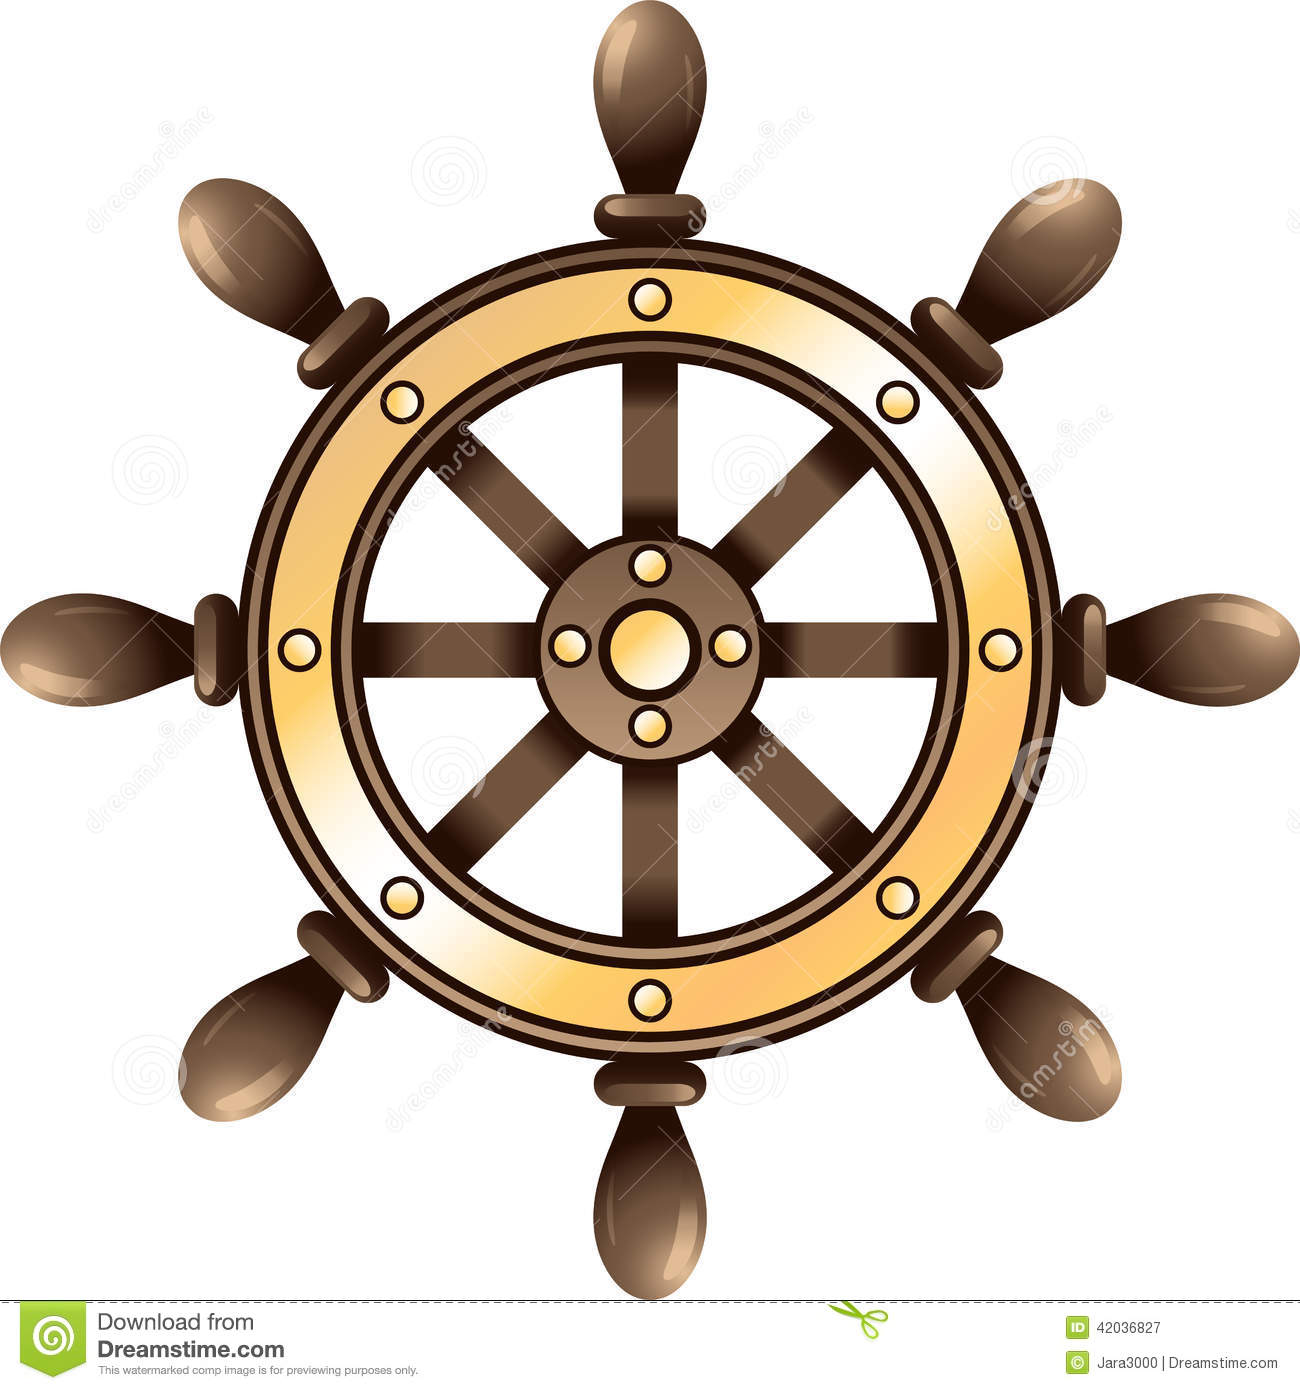 Ship steering wheel. Vector illustration on white background.